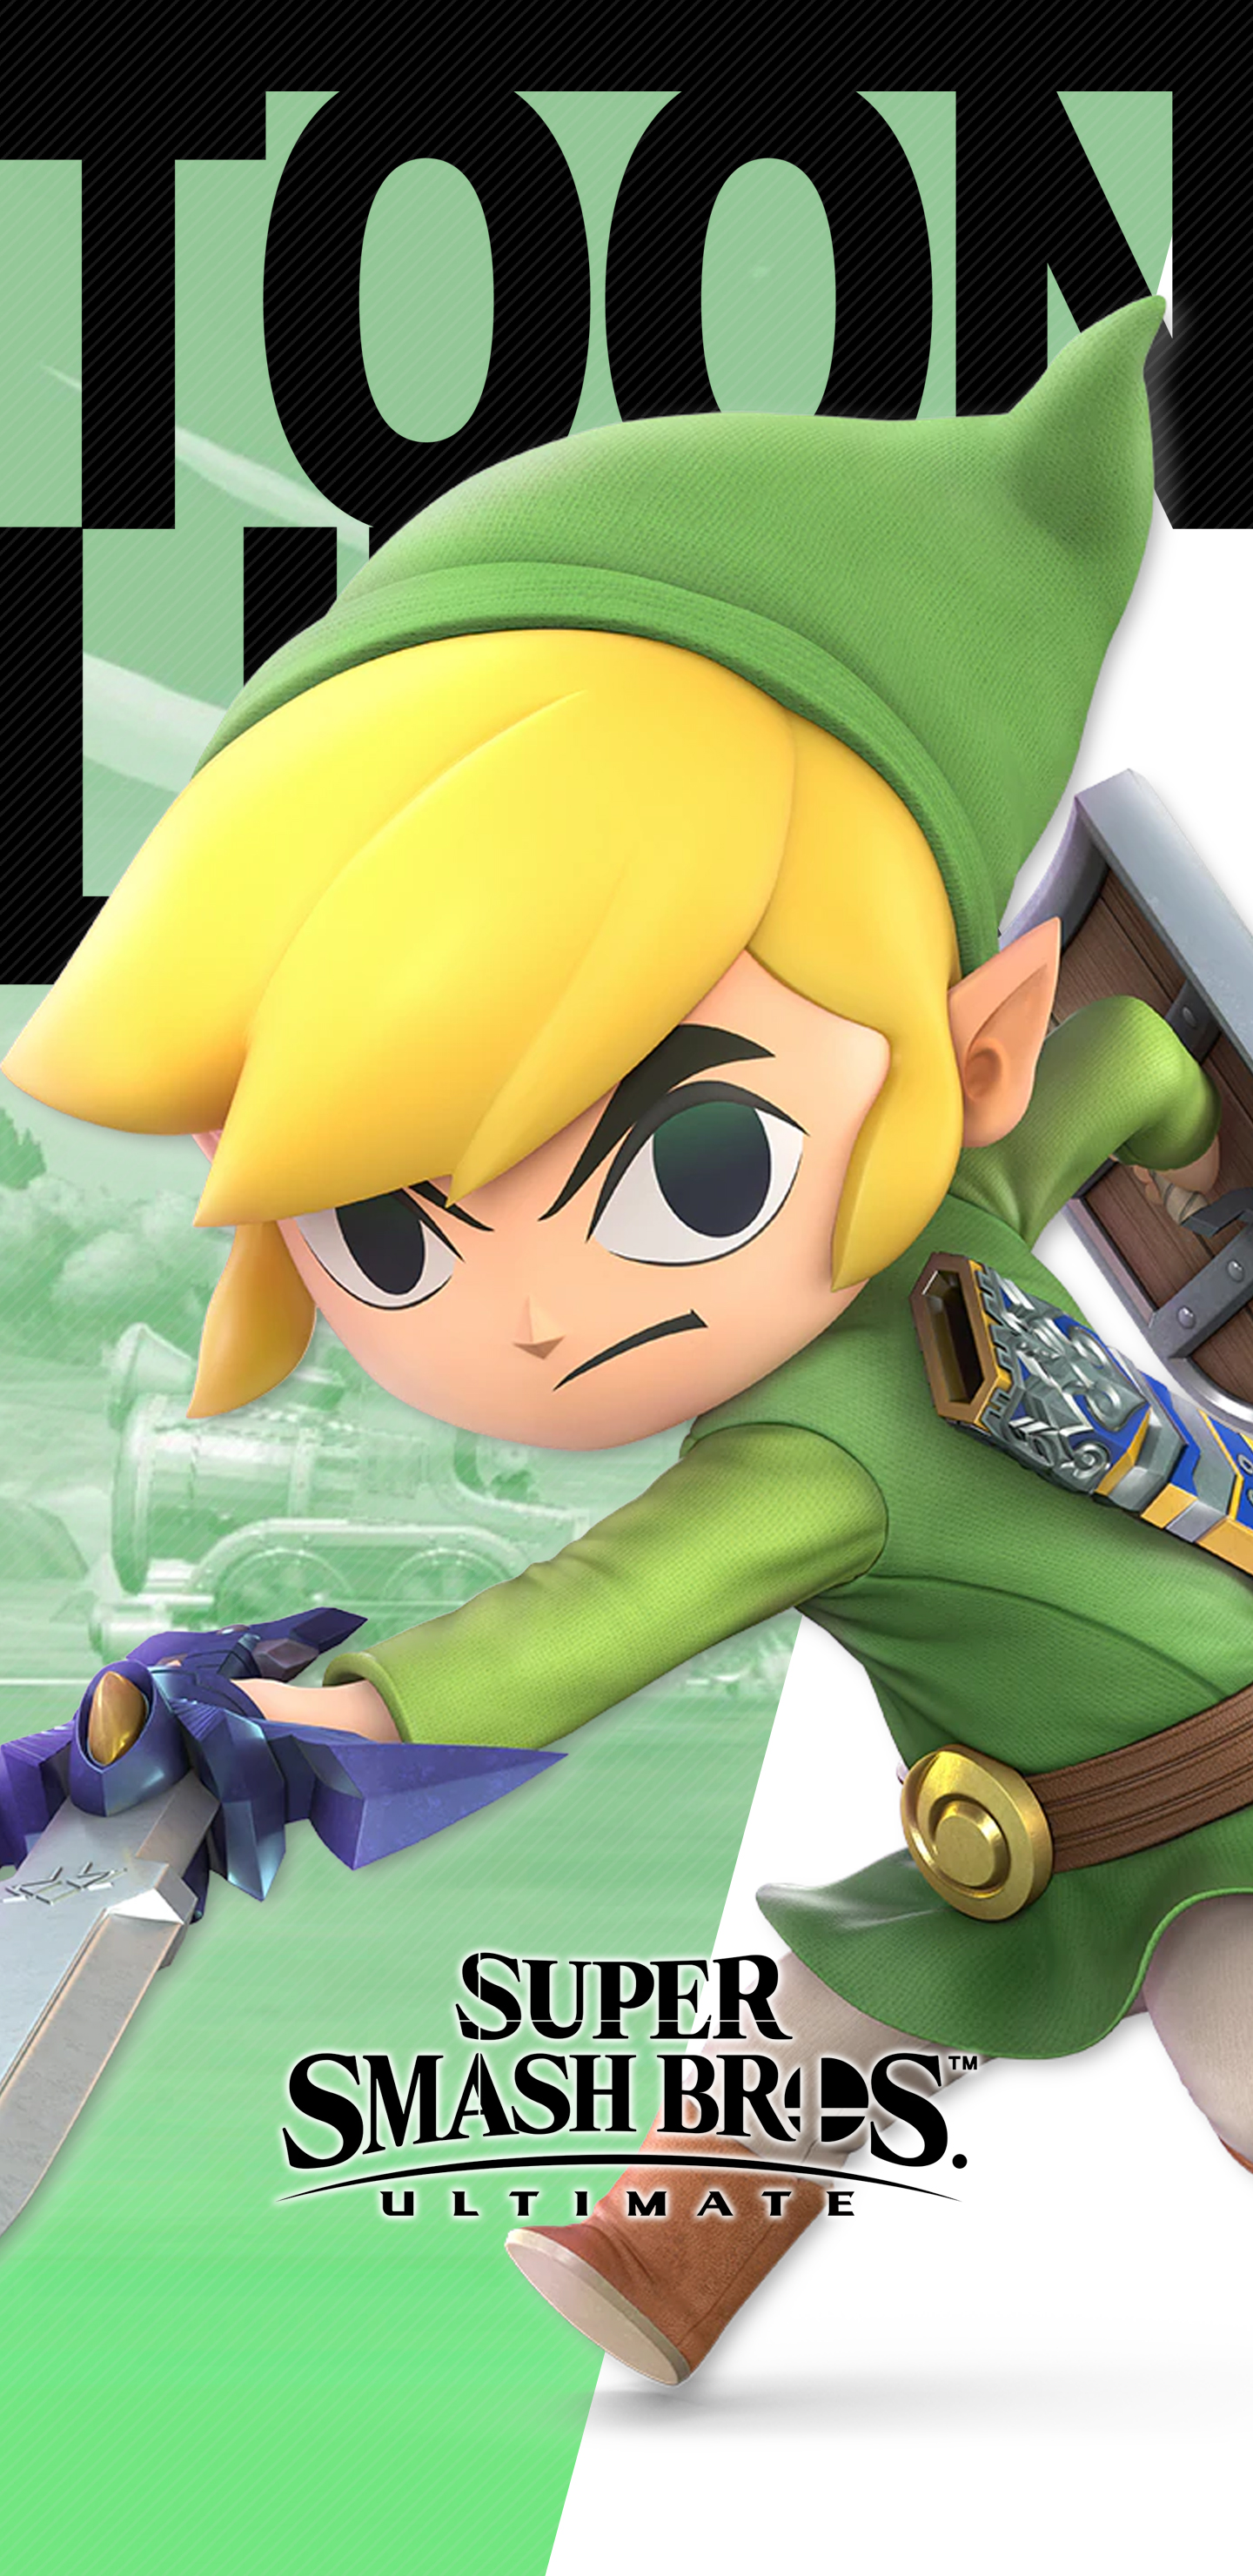 Super Smash Bros Ultimate Toon Link Wallpapers Cat With Monocle